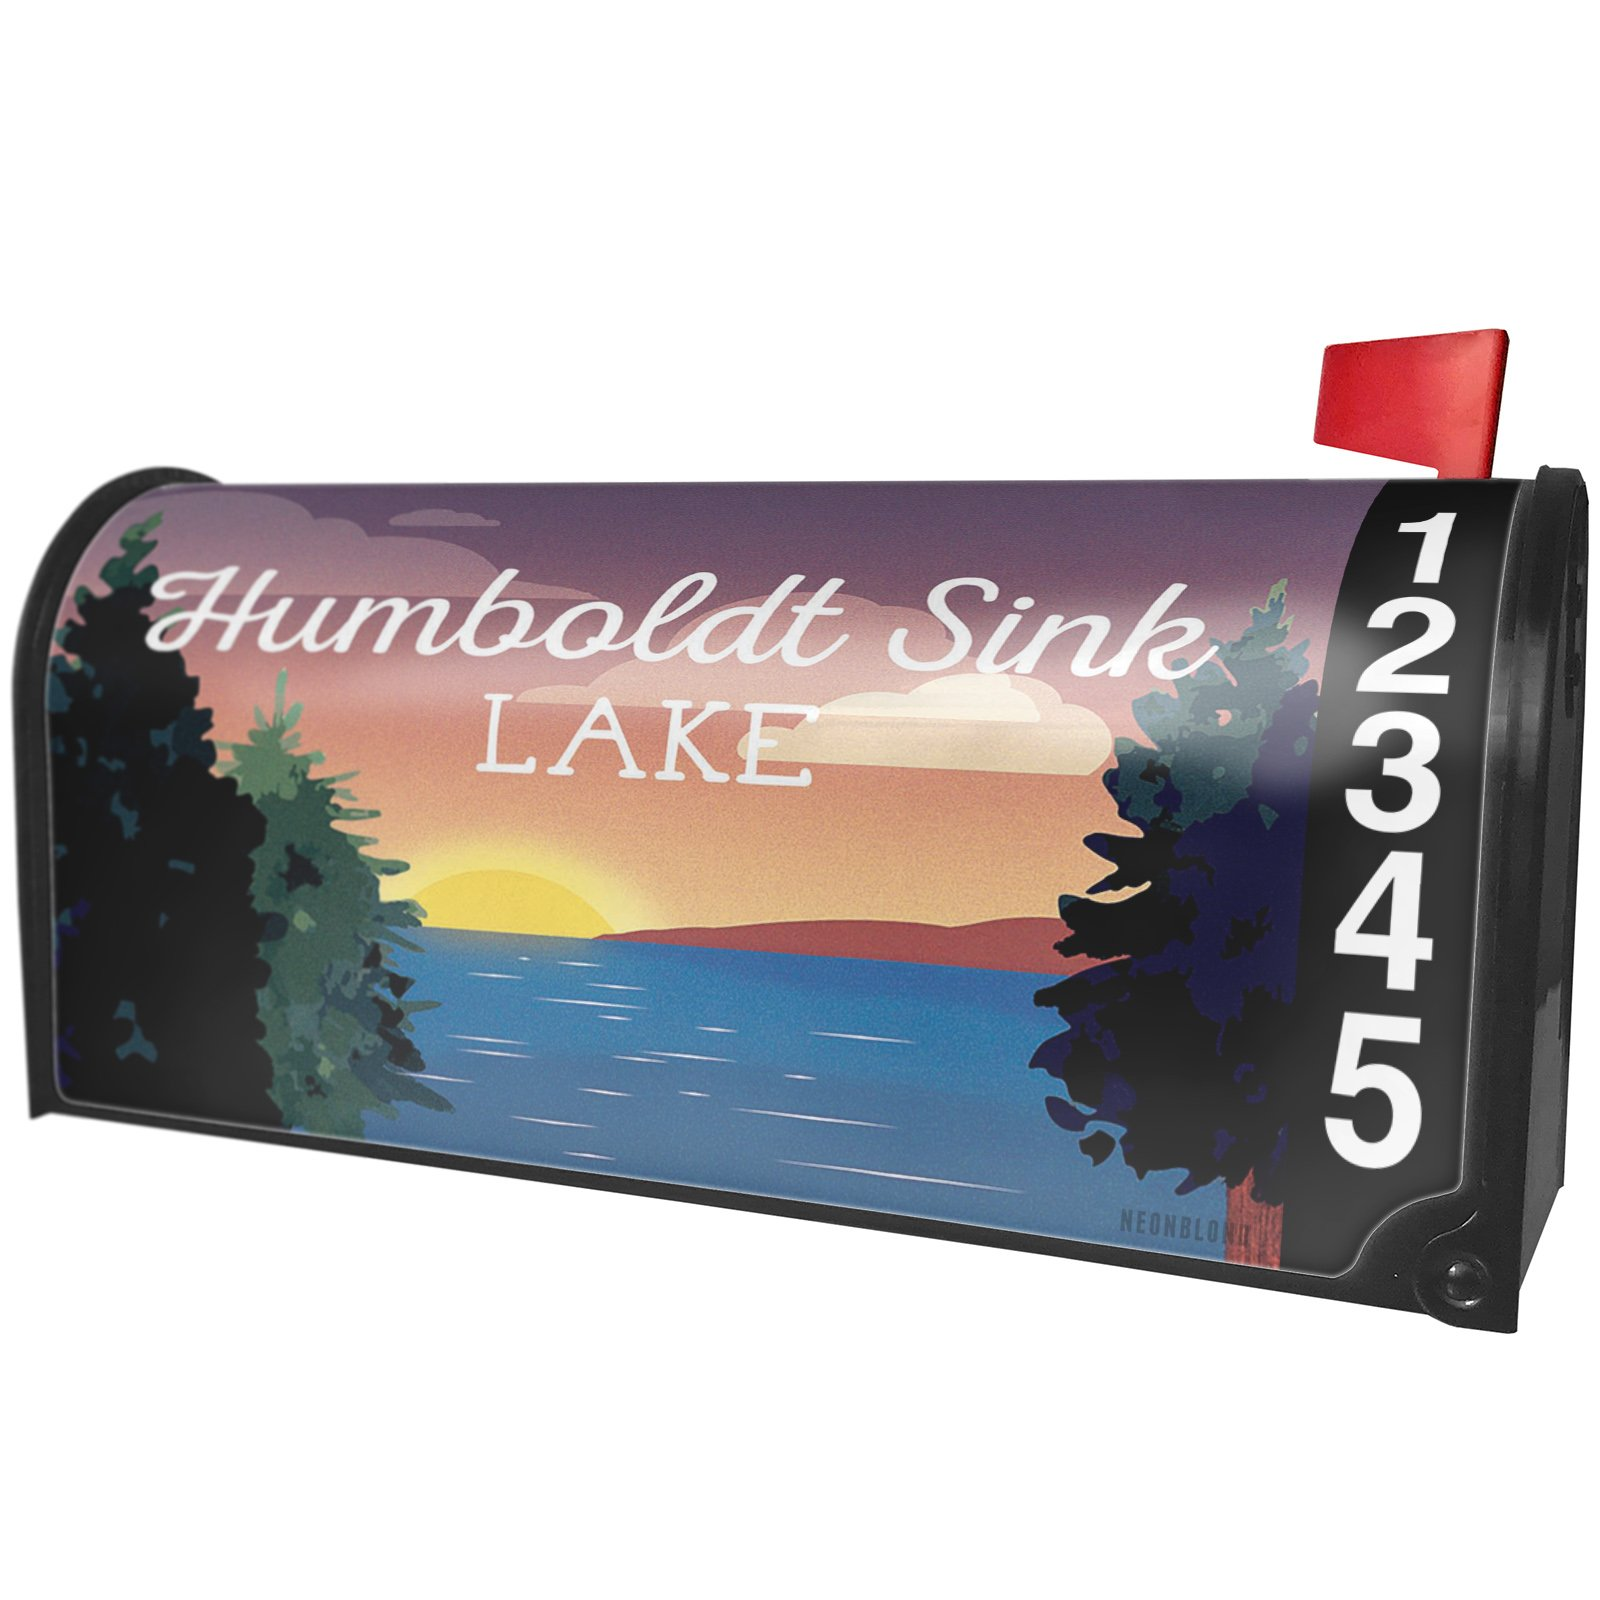 NEONBLOND Lake retro design Humboldt Sink Magnetic Mailbox Cover Custom Numbers